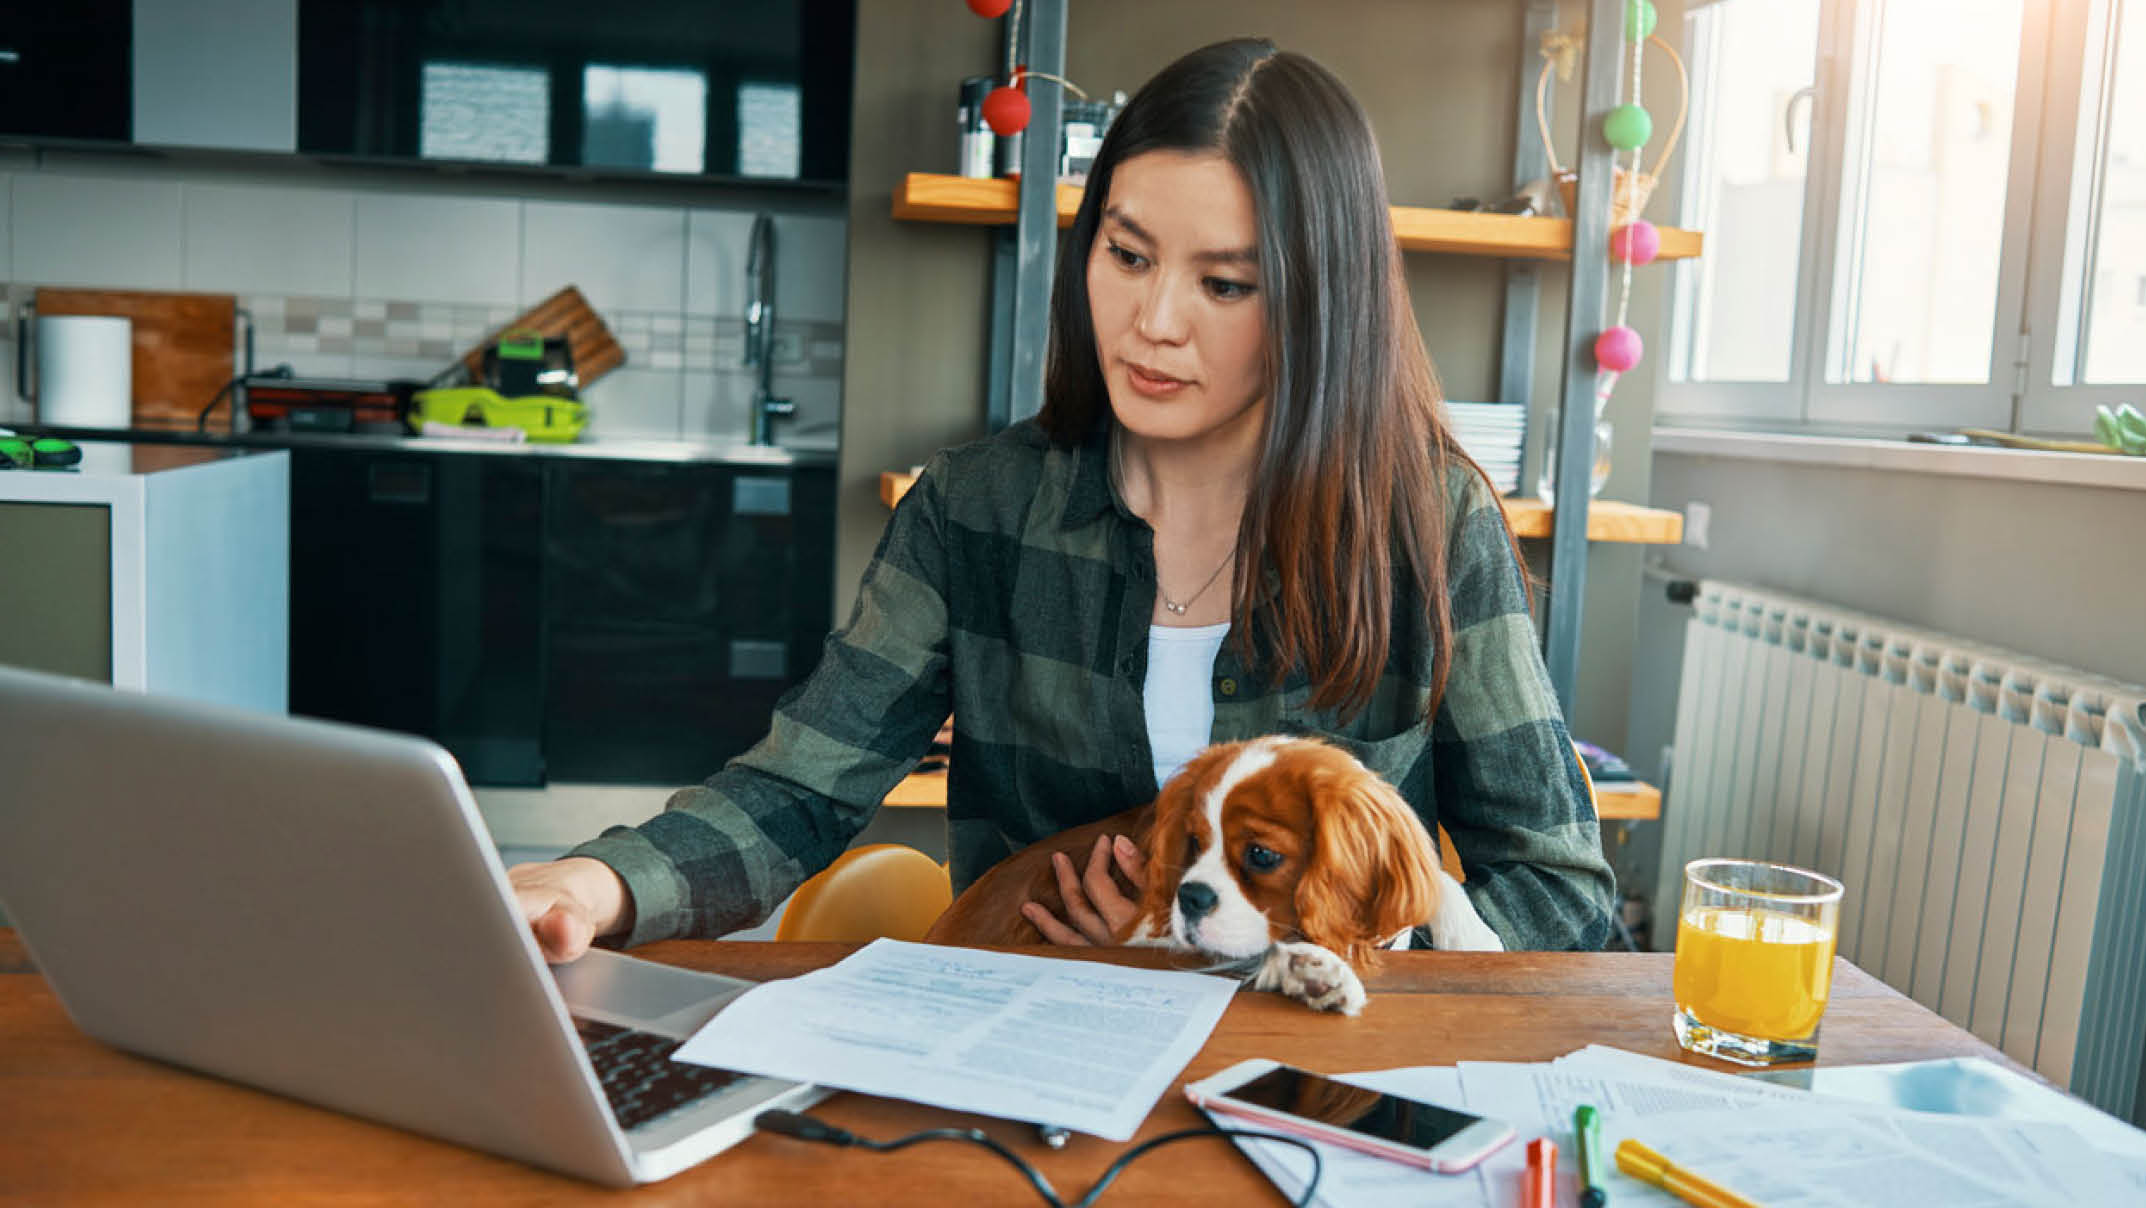 Female Working from Home with a Puppy on her Lap and on her Laptop